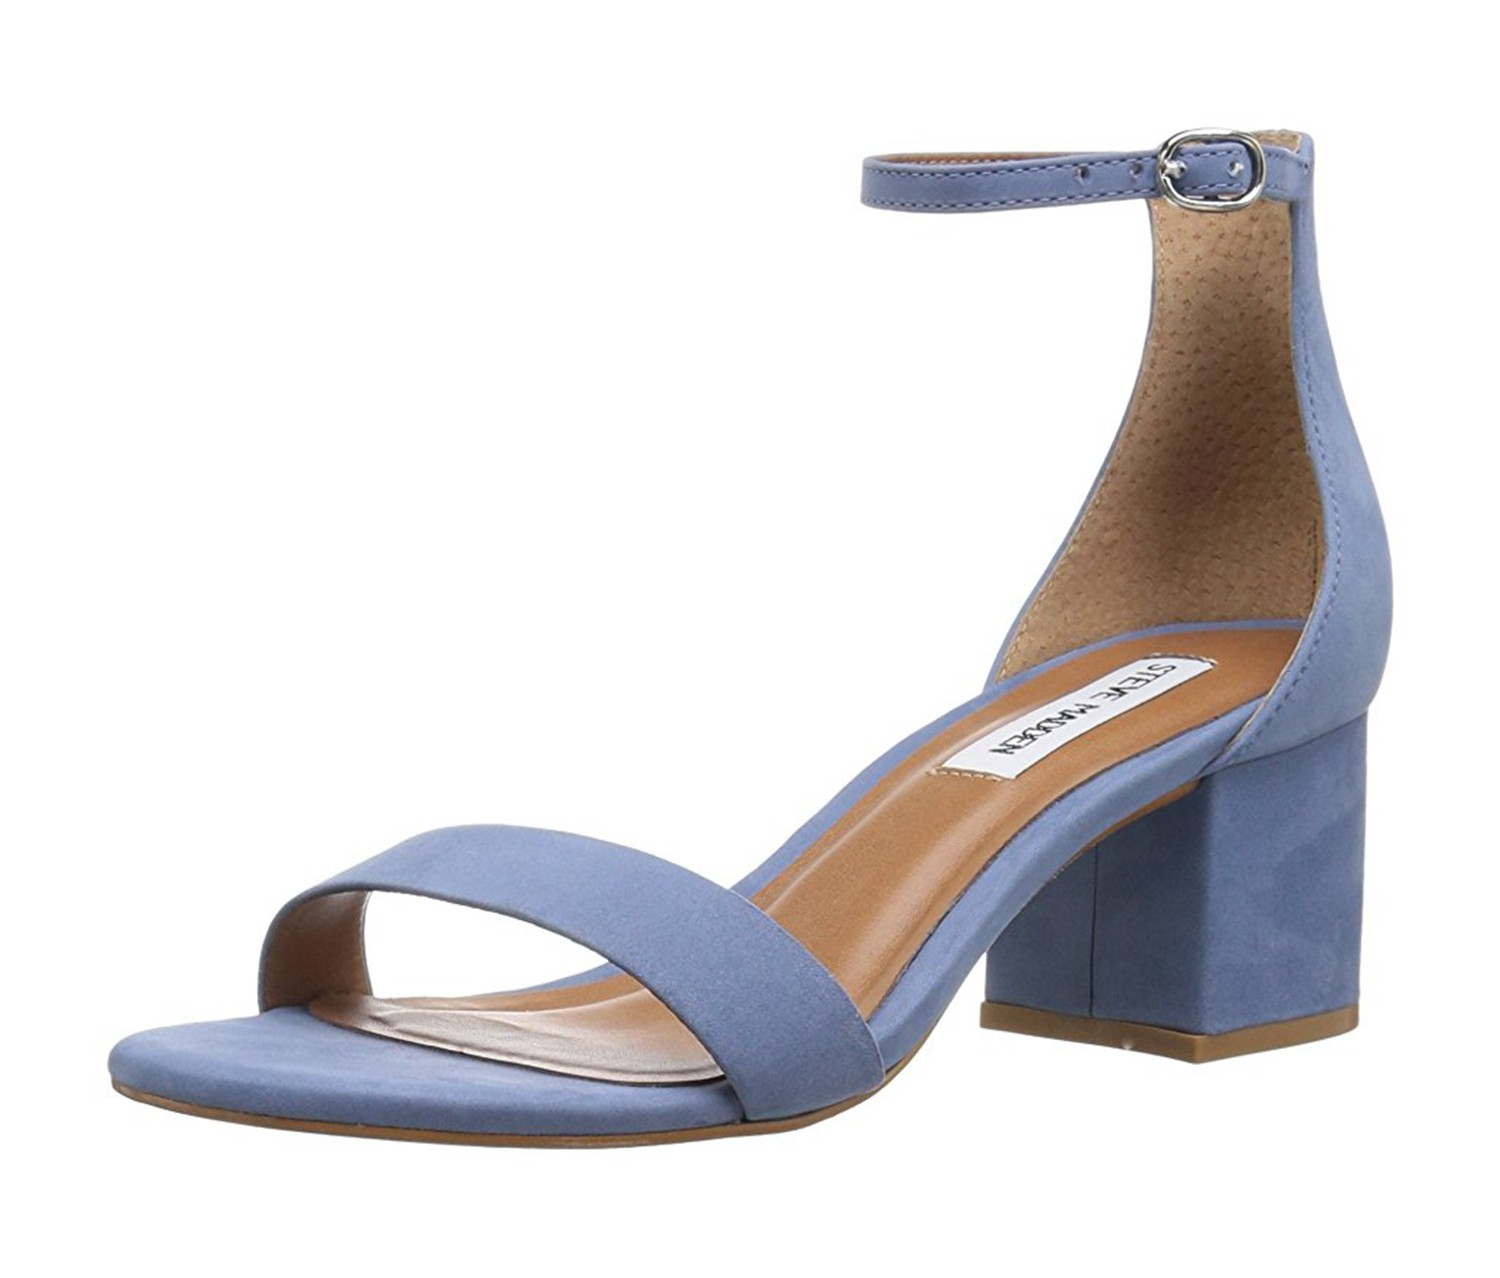 7085fc8817a Shop steve madden steve madden womens irenee heeled dress sandal jpg  450x384 Irenee light